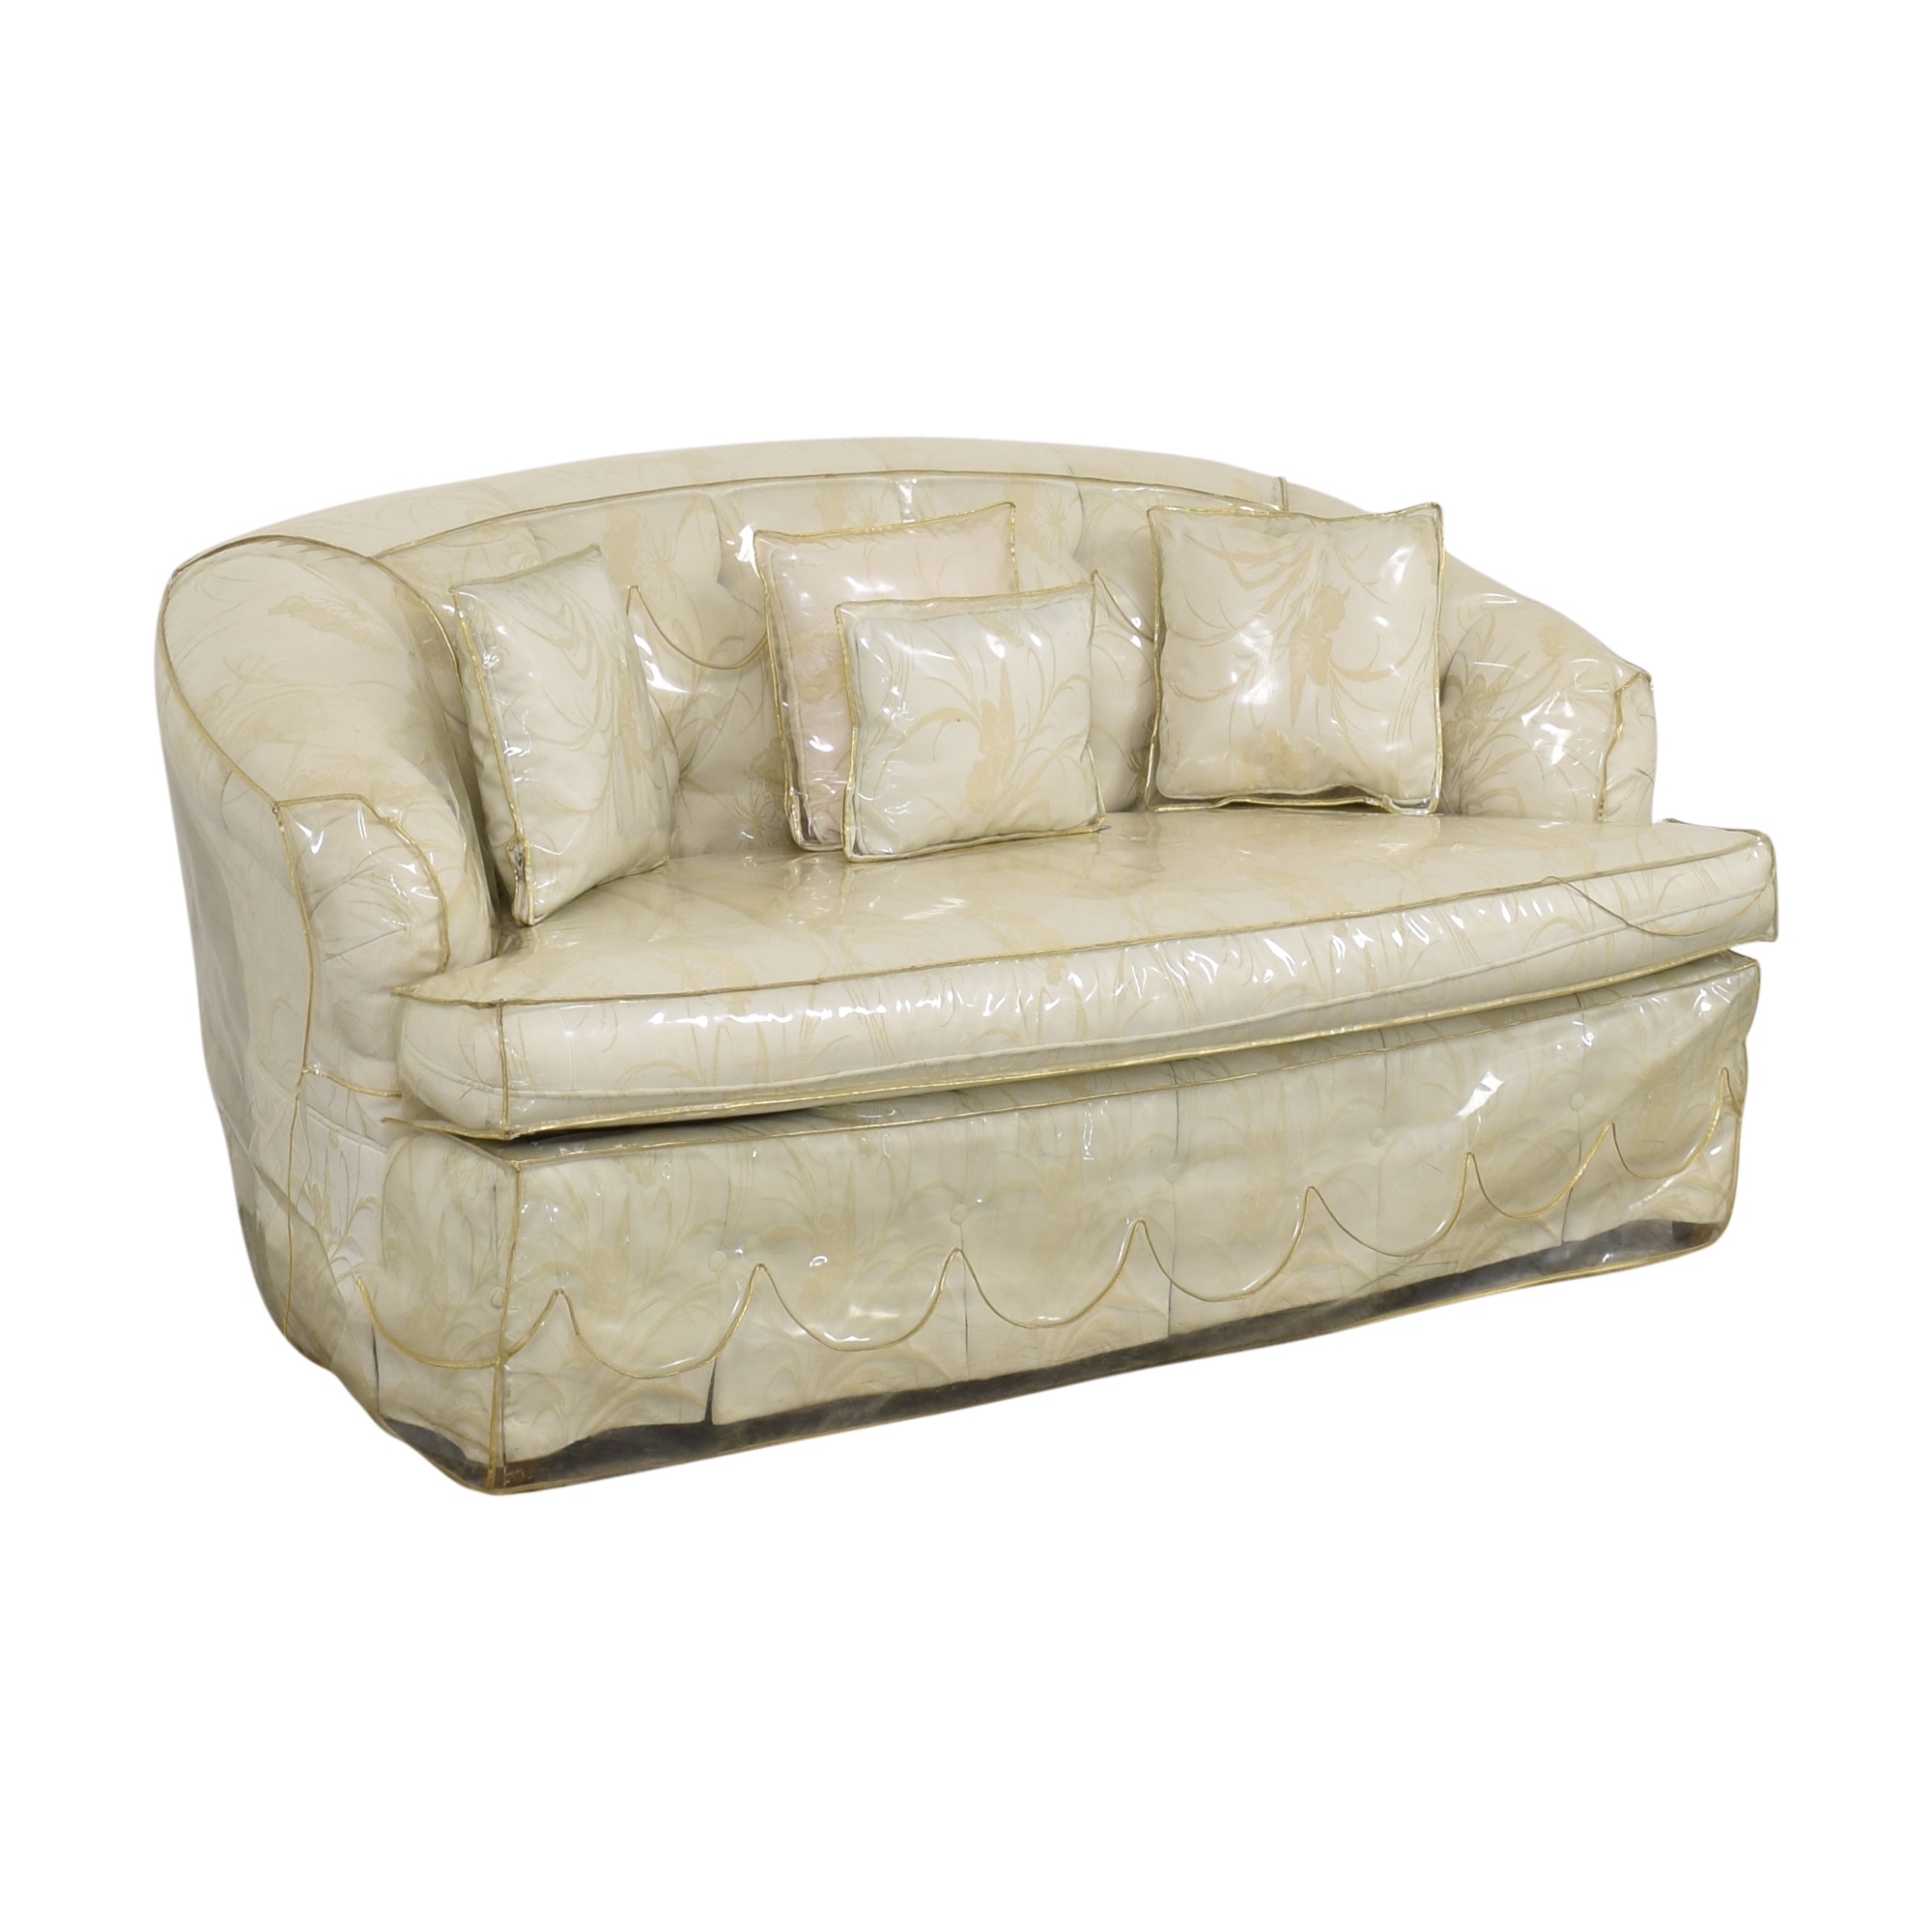 shop Key City Furniture Key City Furniture Tufted Loveseat online